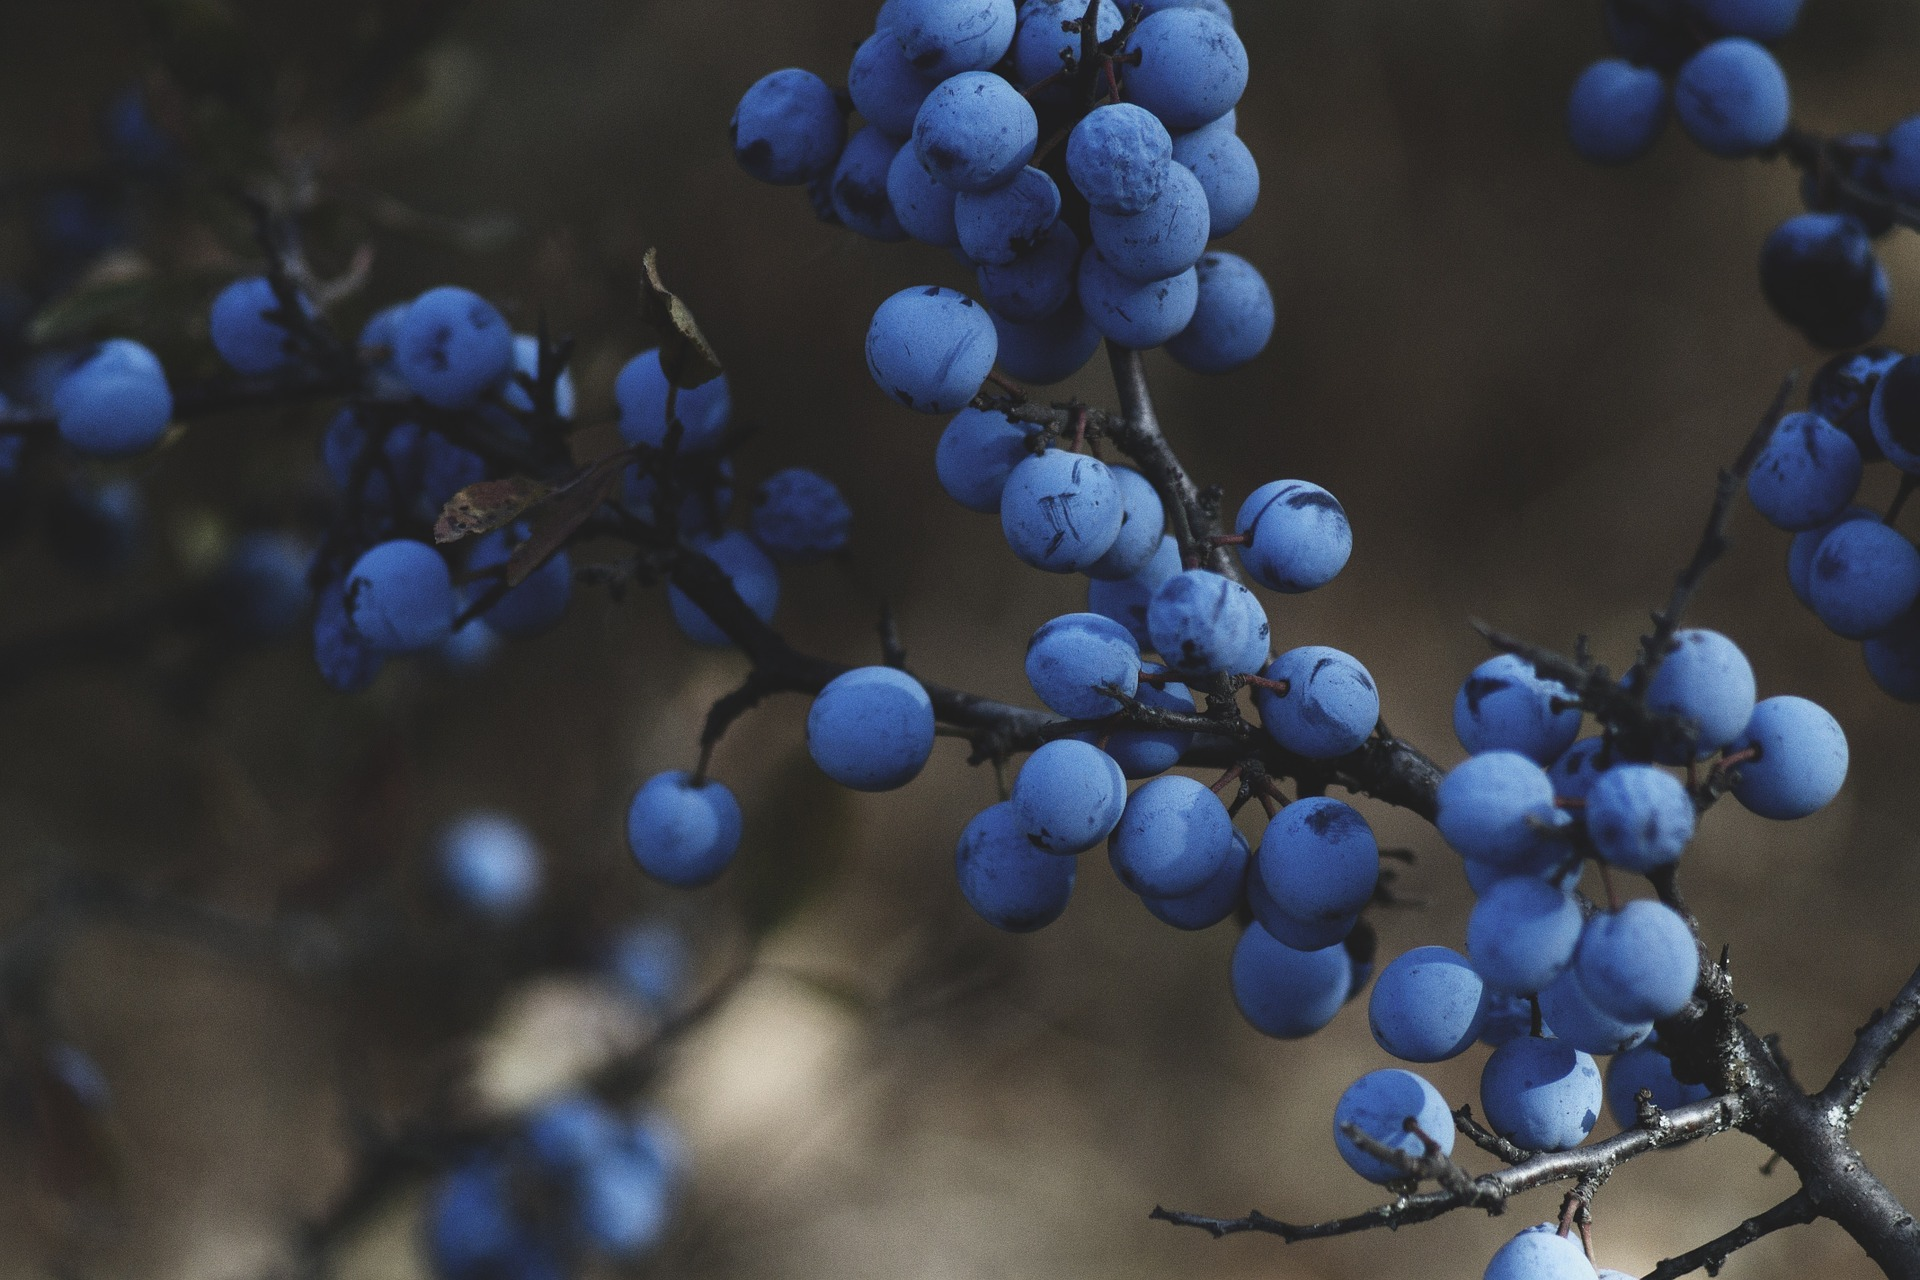 blueberries-1031221-1920.jpg